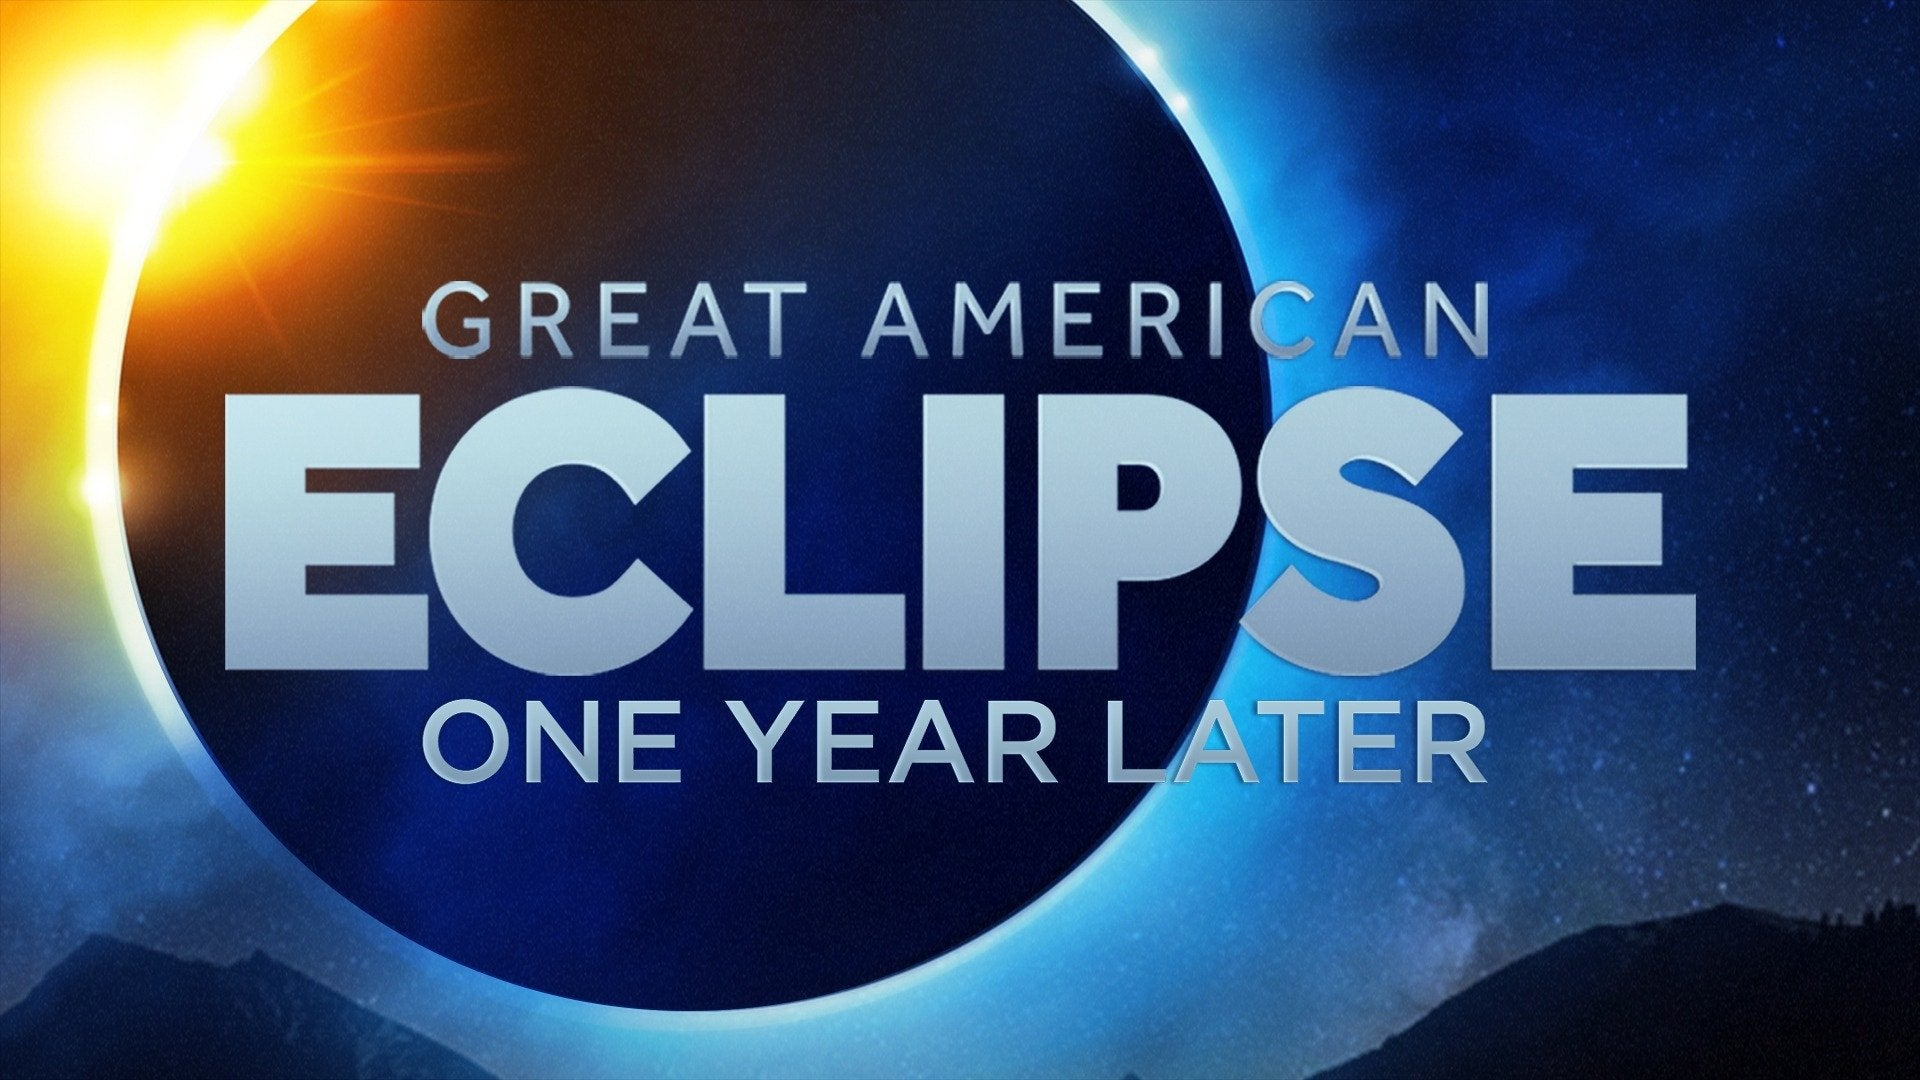 Great American Eclipse: One Year Later